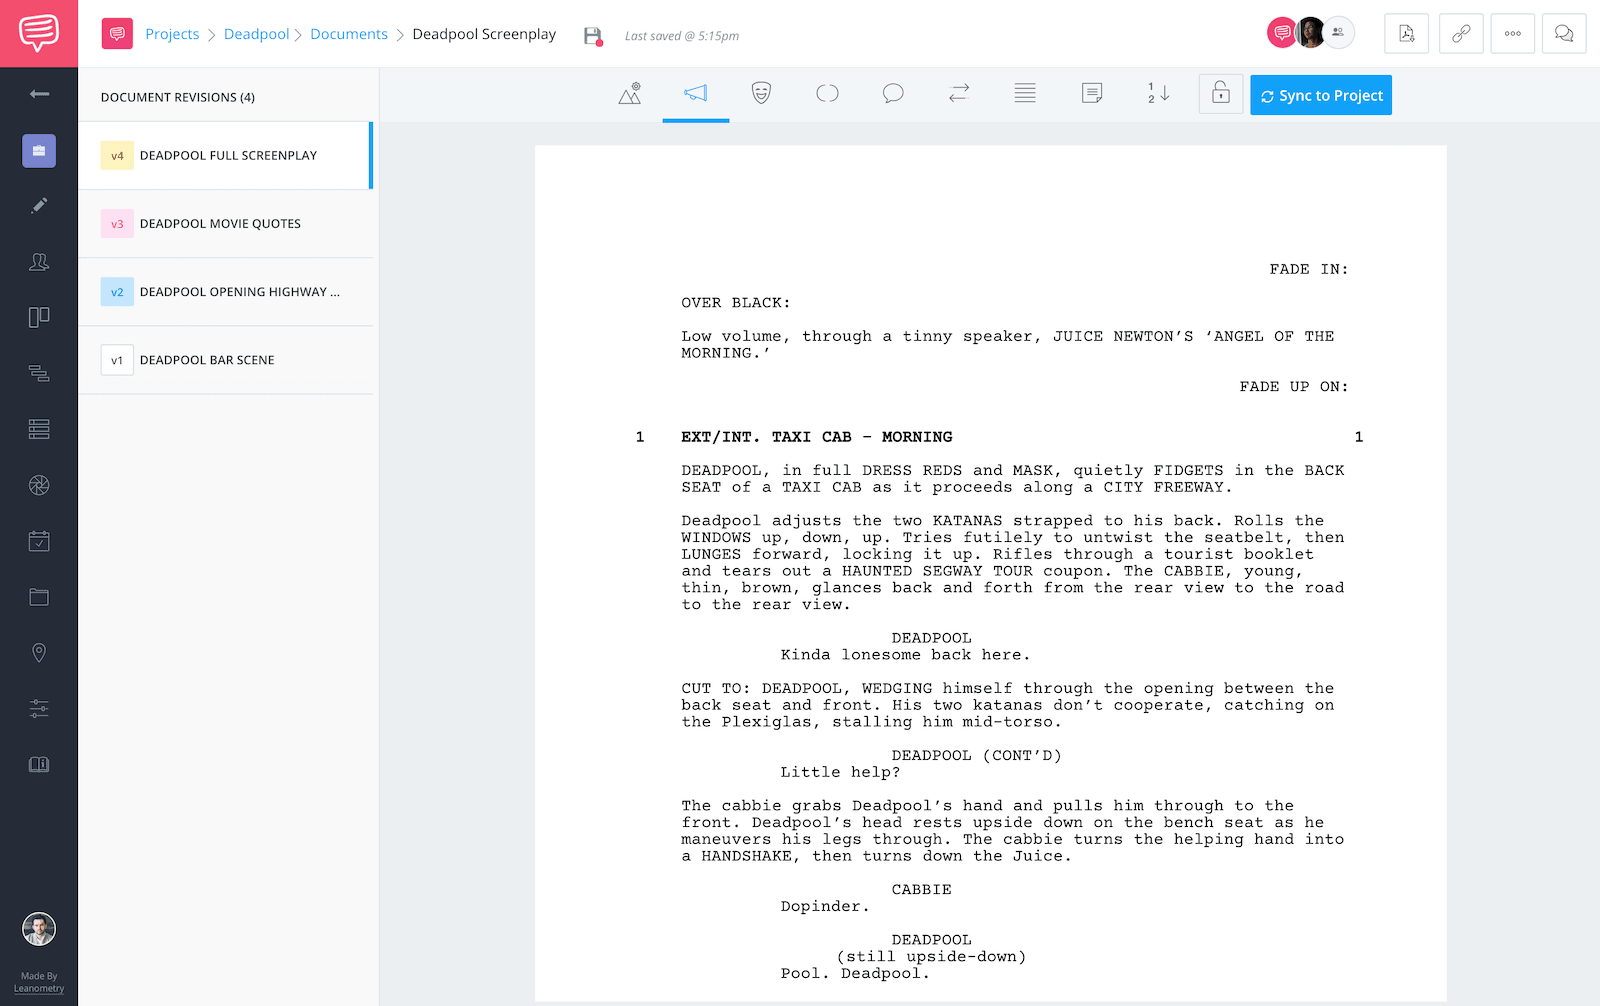 Deadpool script teardown - full screenplay featured image - StudioBinder